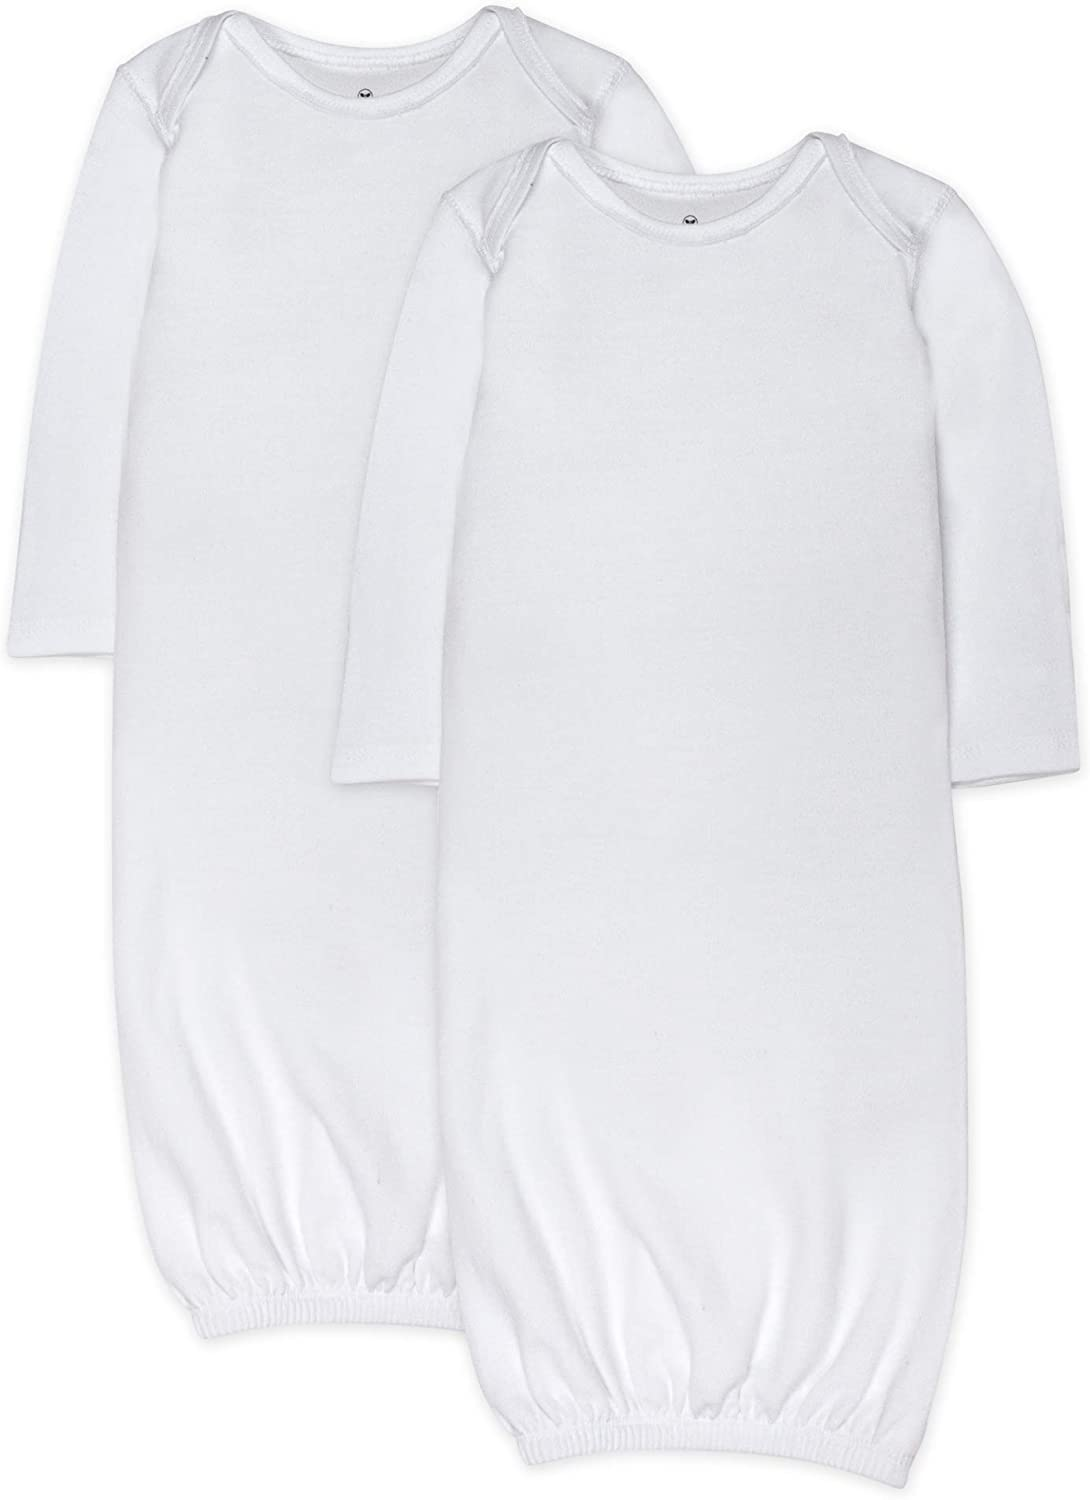 HonestBaby Baby 2-Pack Organic Cotton Sleeper Gowns